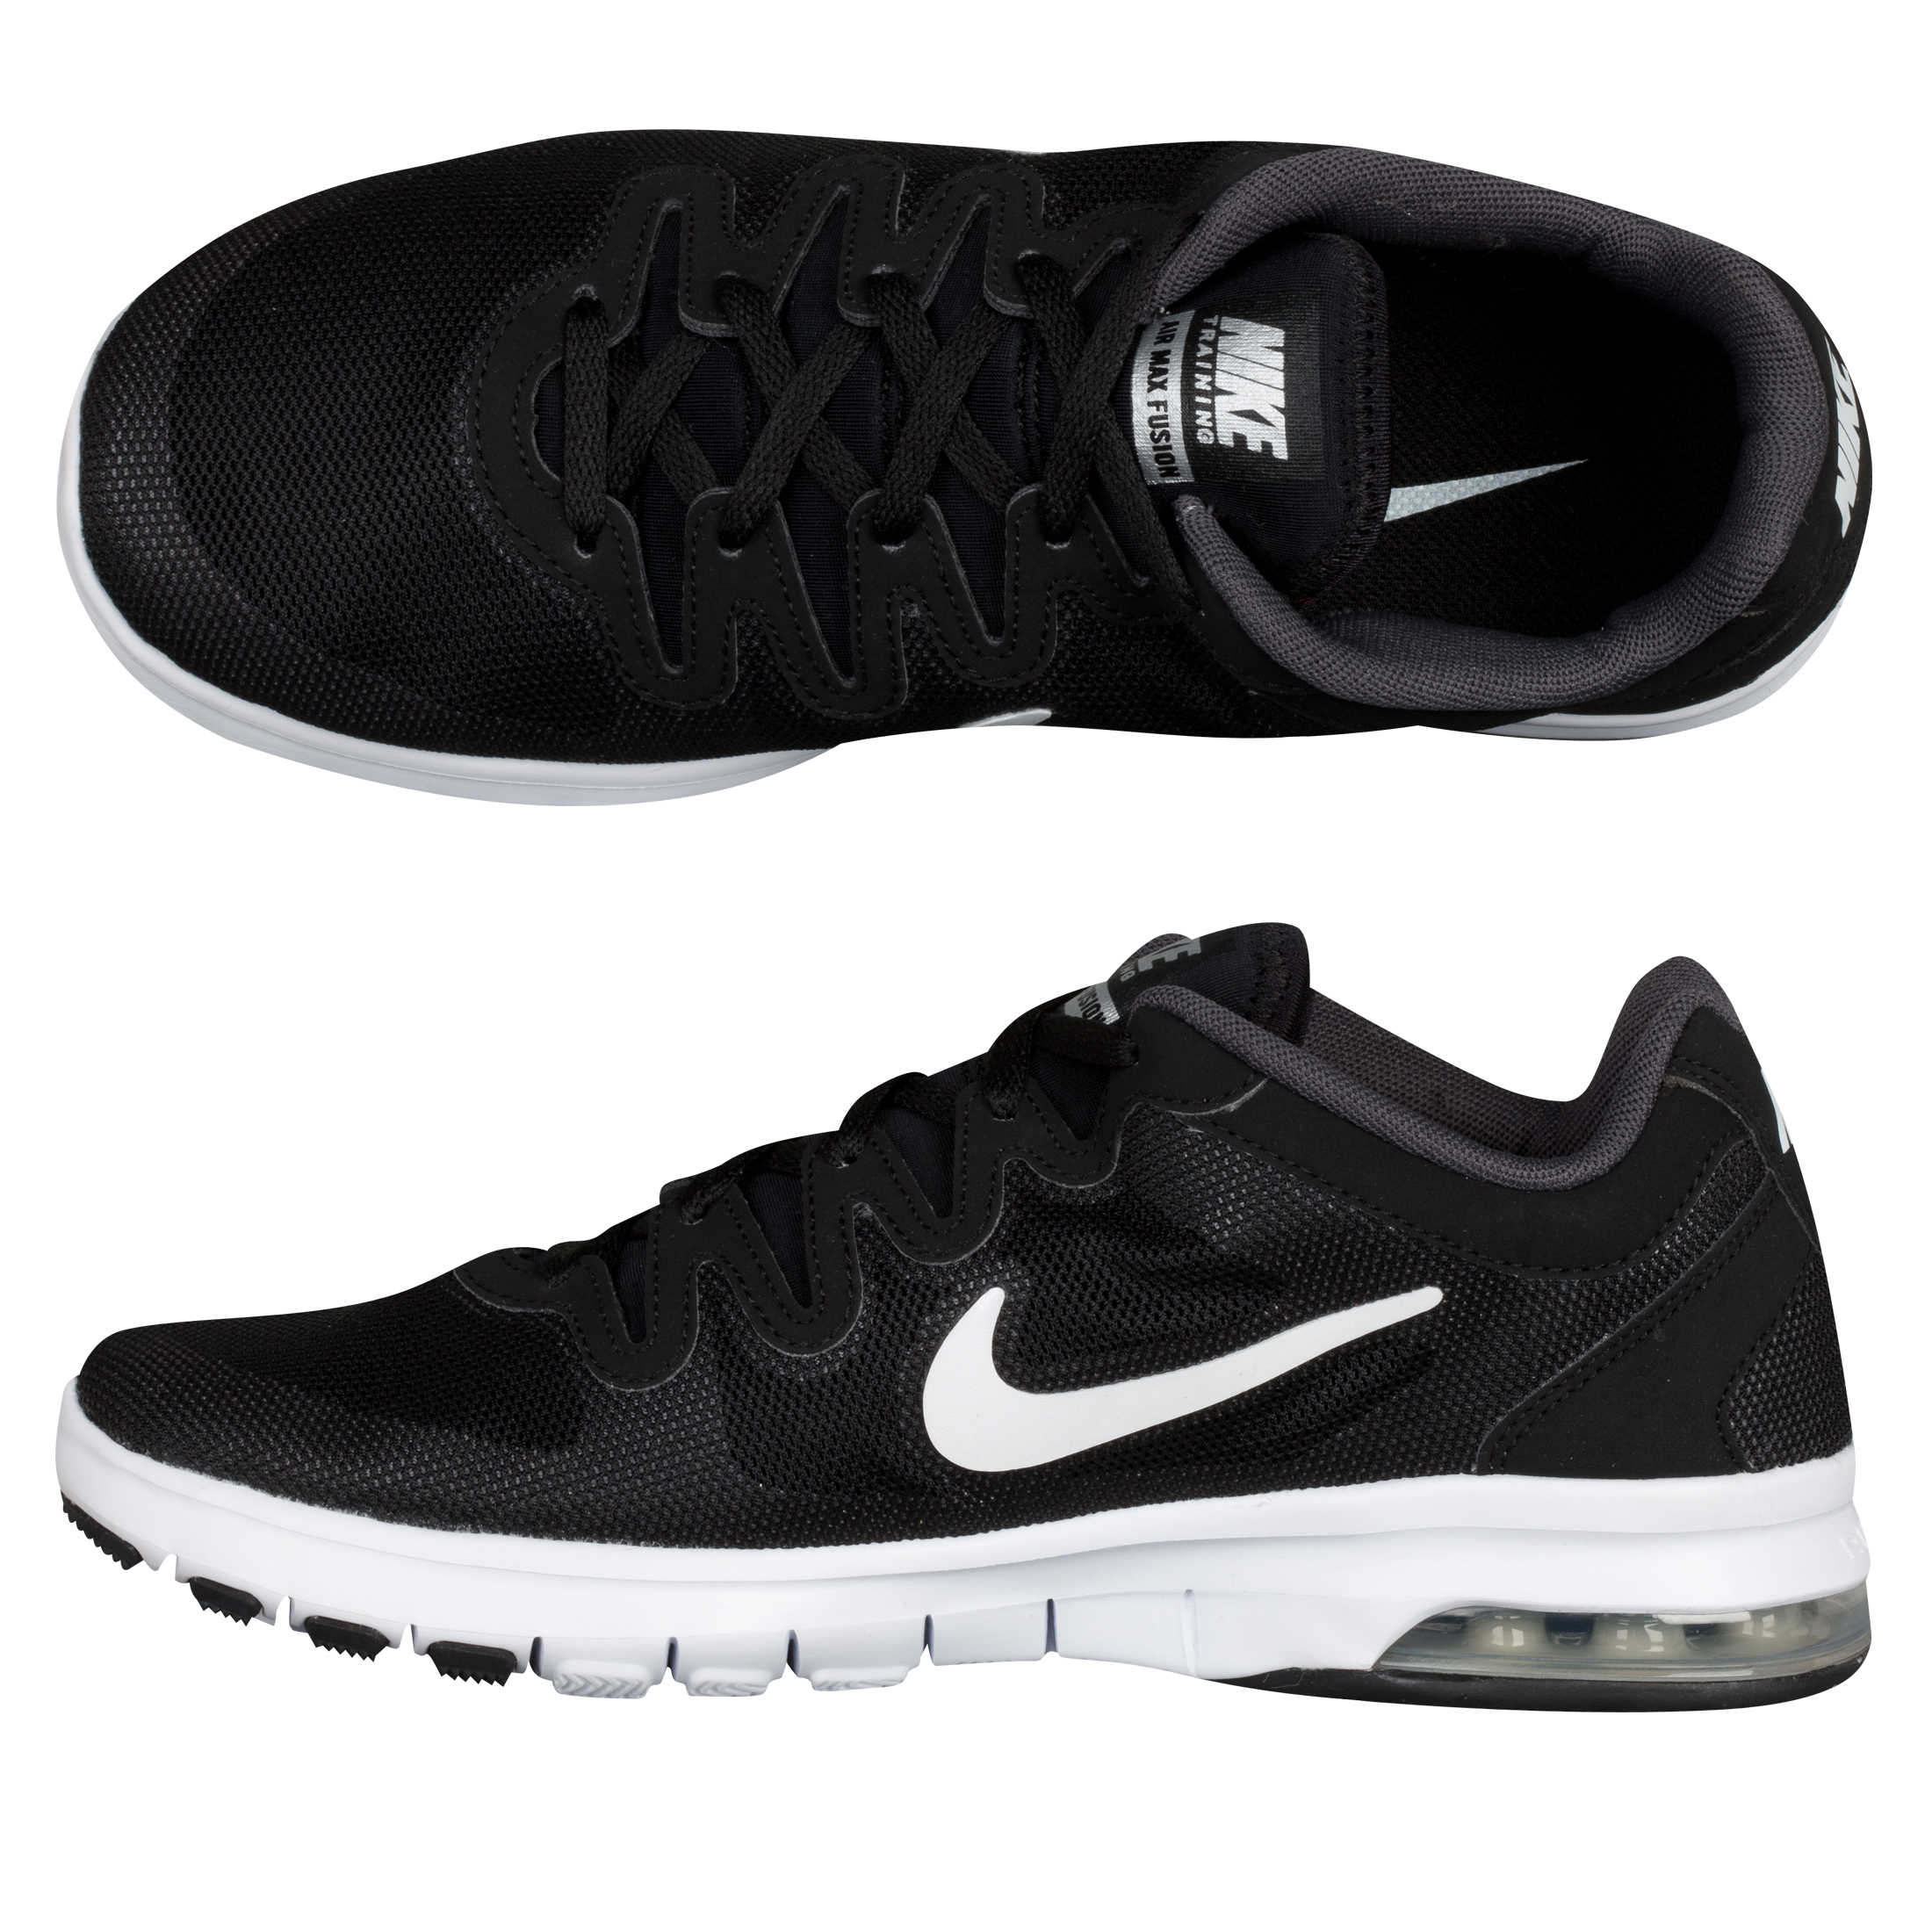 Nike Air Max Fusion - Black/White/Anthracite - Womens